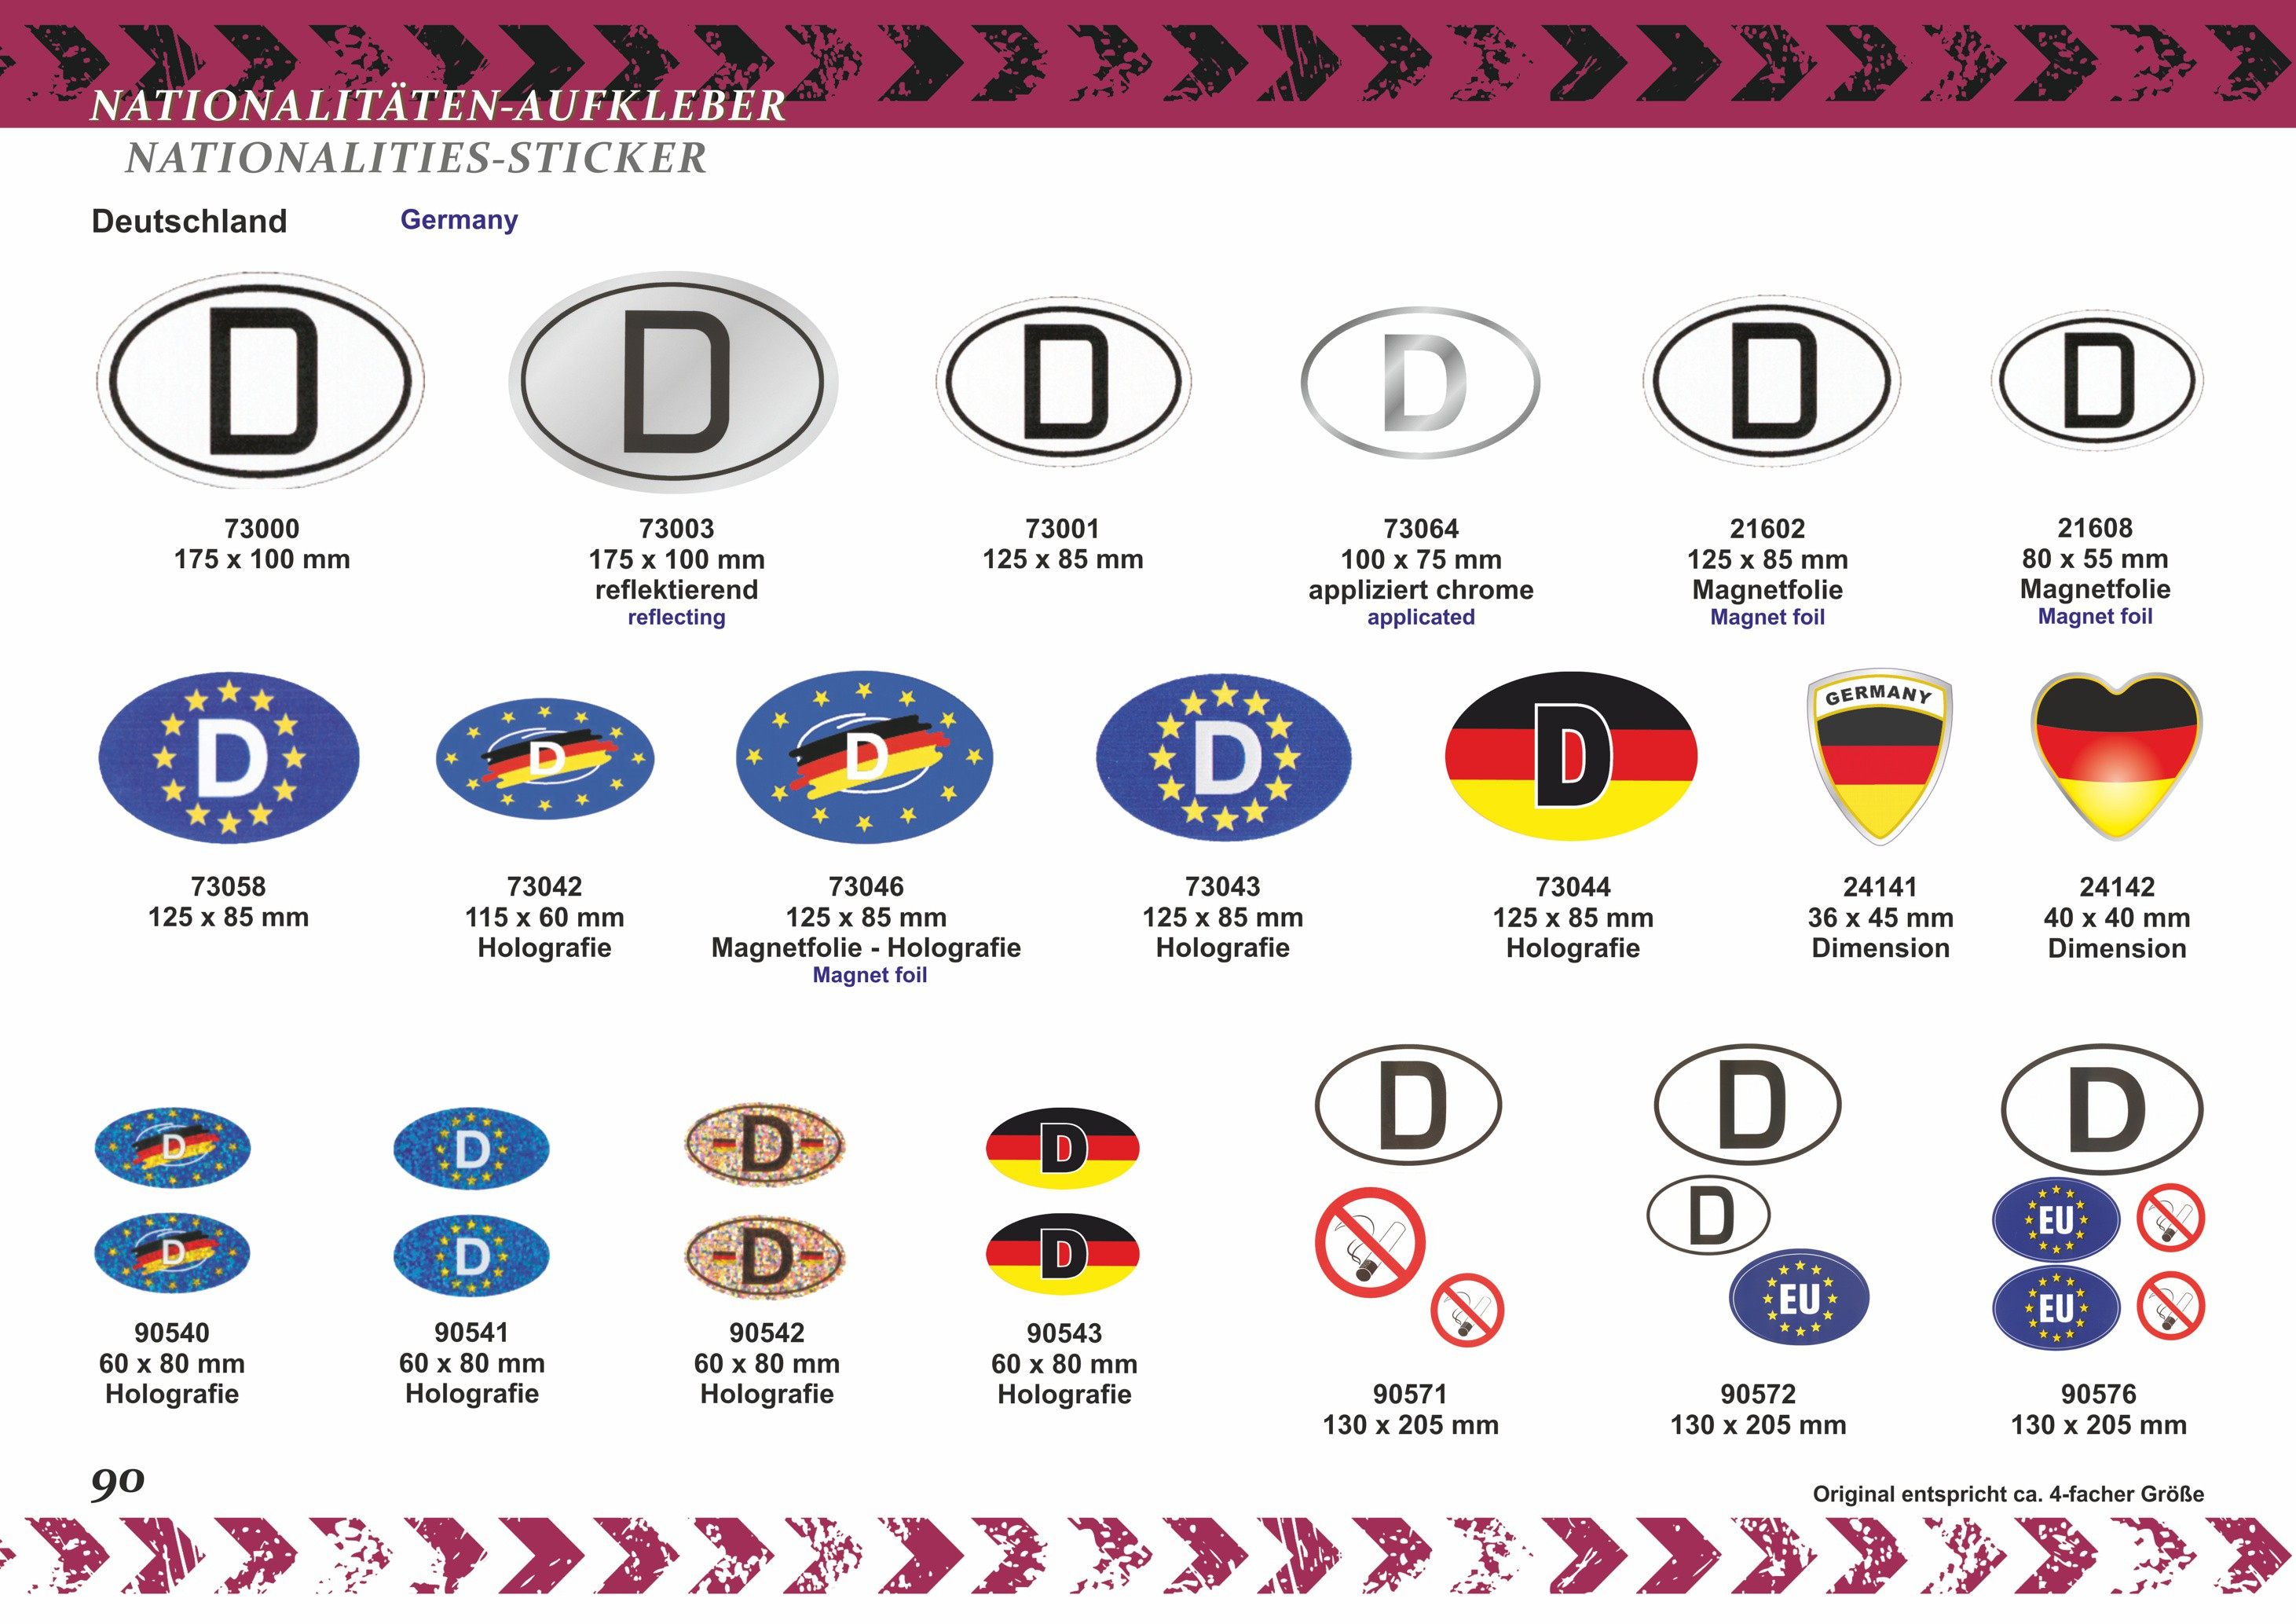 Sticker Europe-D holography 125 x 85 mm – Bild 4